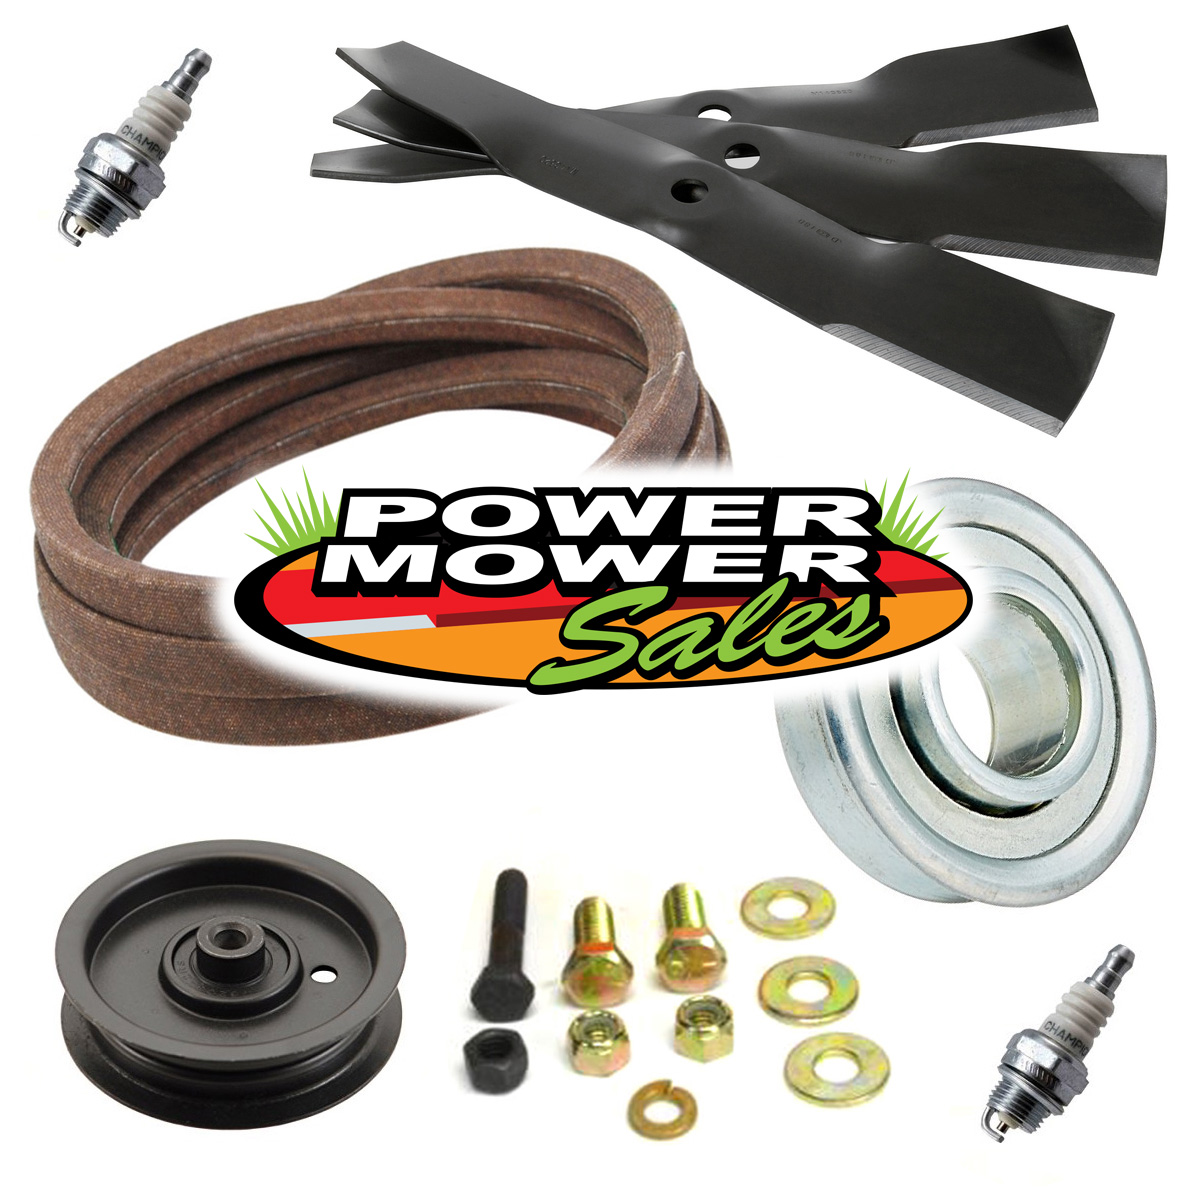 24 789 03-S  Maintenance Kit for 11HP through 16HP Command PRO Single Cylinder Models CV11 - CV16 | CV460 - CV493